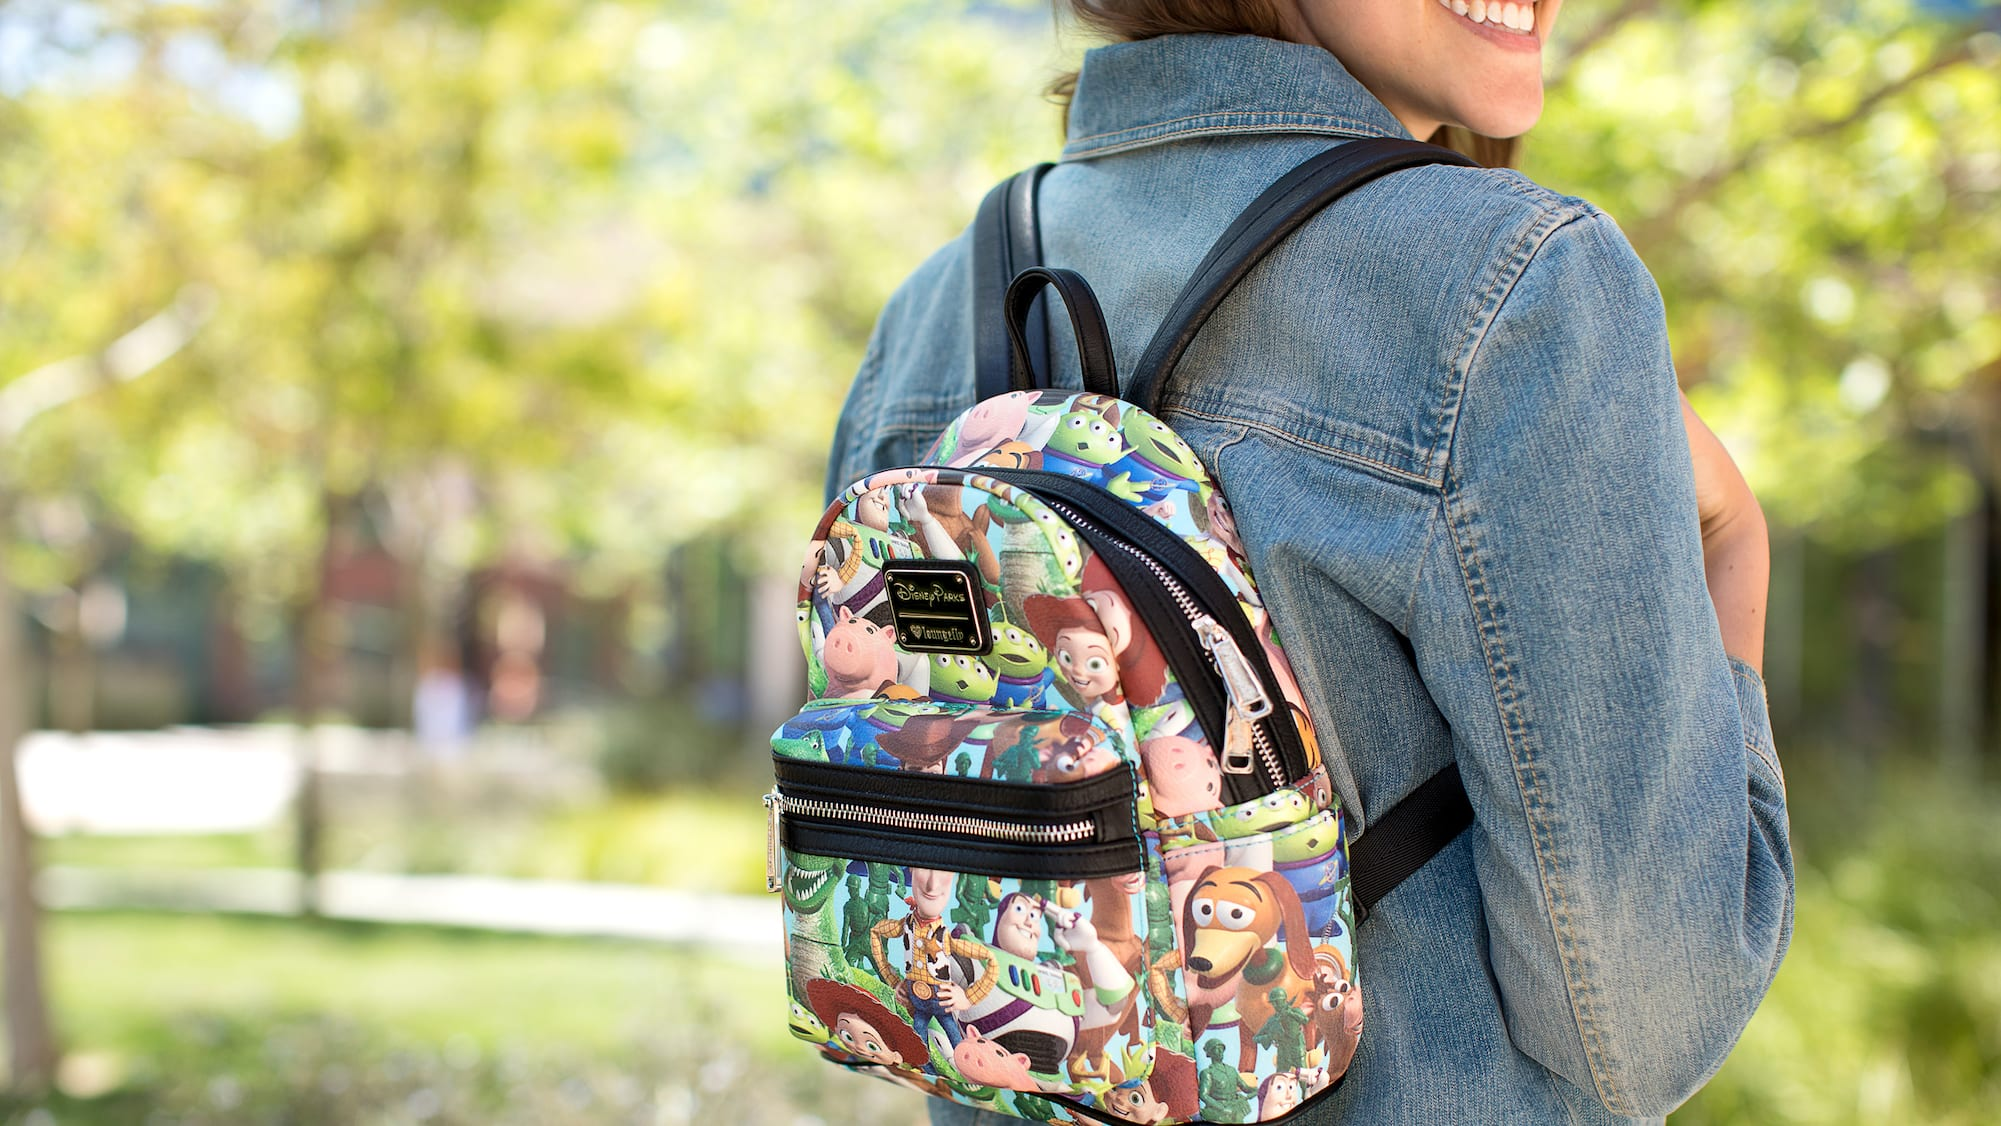 5fcc0bfb2a2 A woman wearing a small backpack with a Toy story themed graphic print